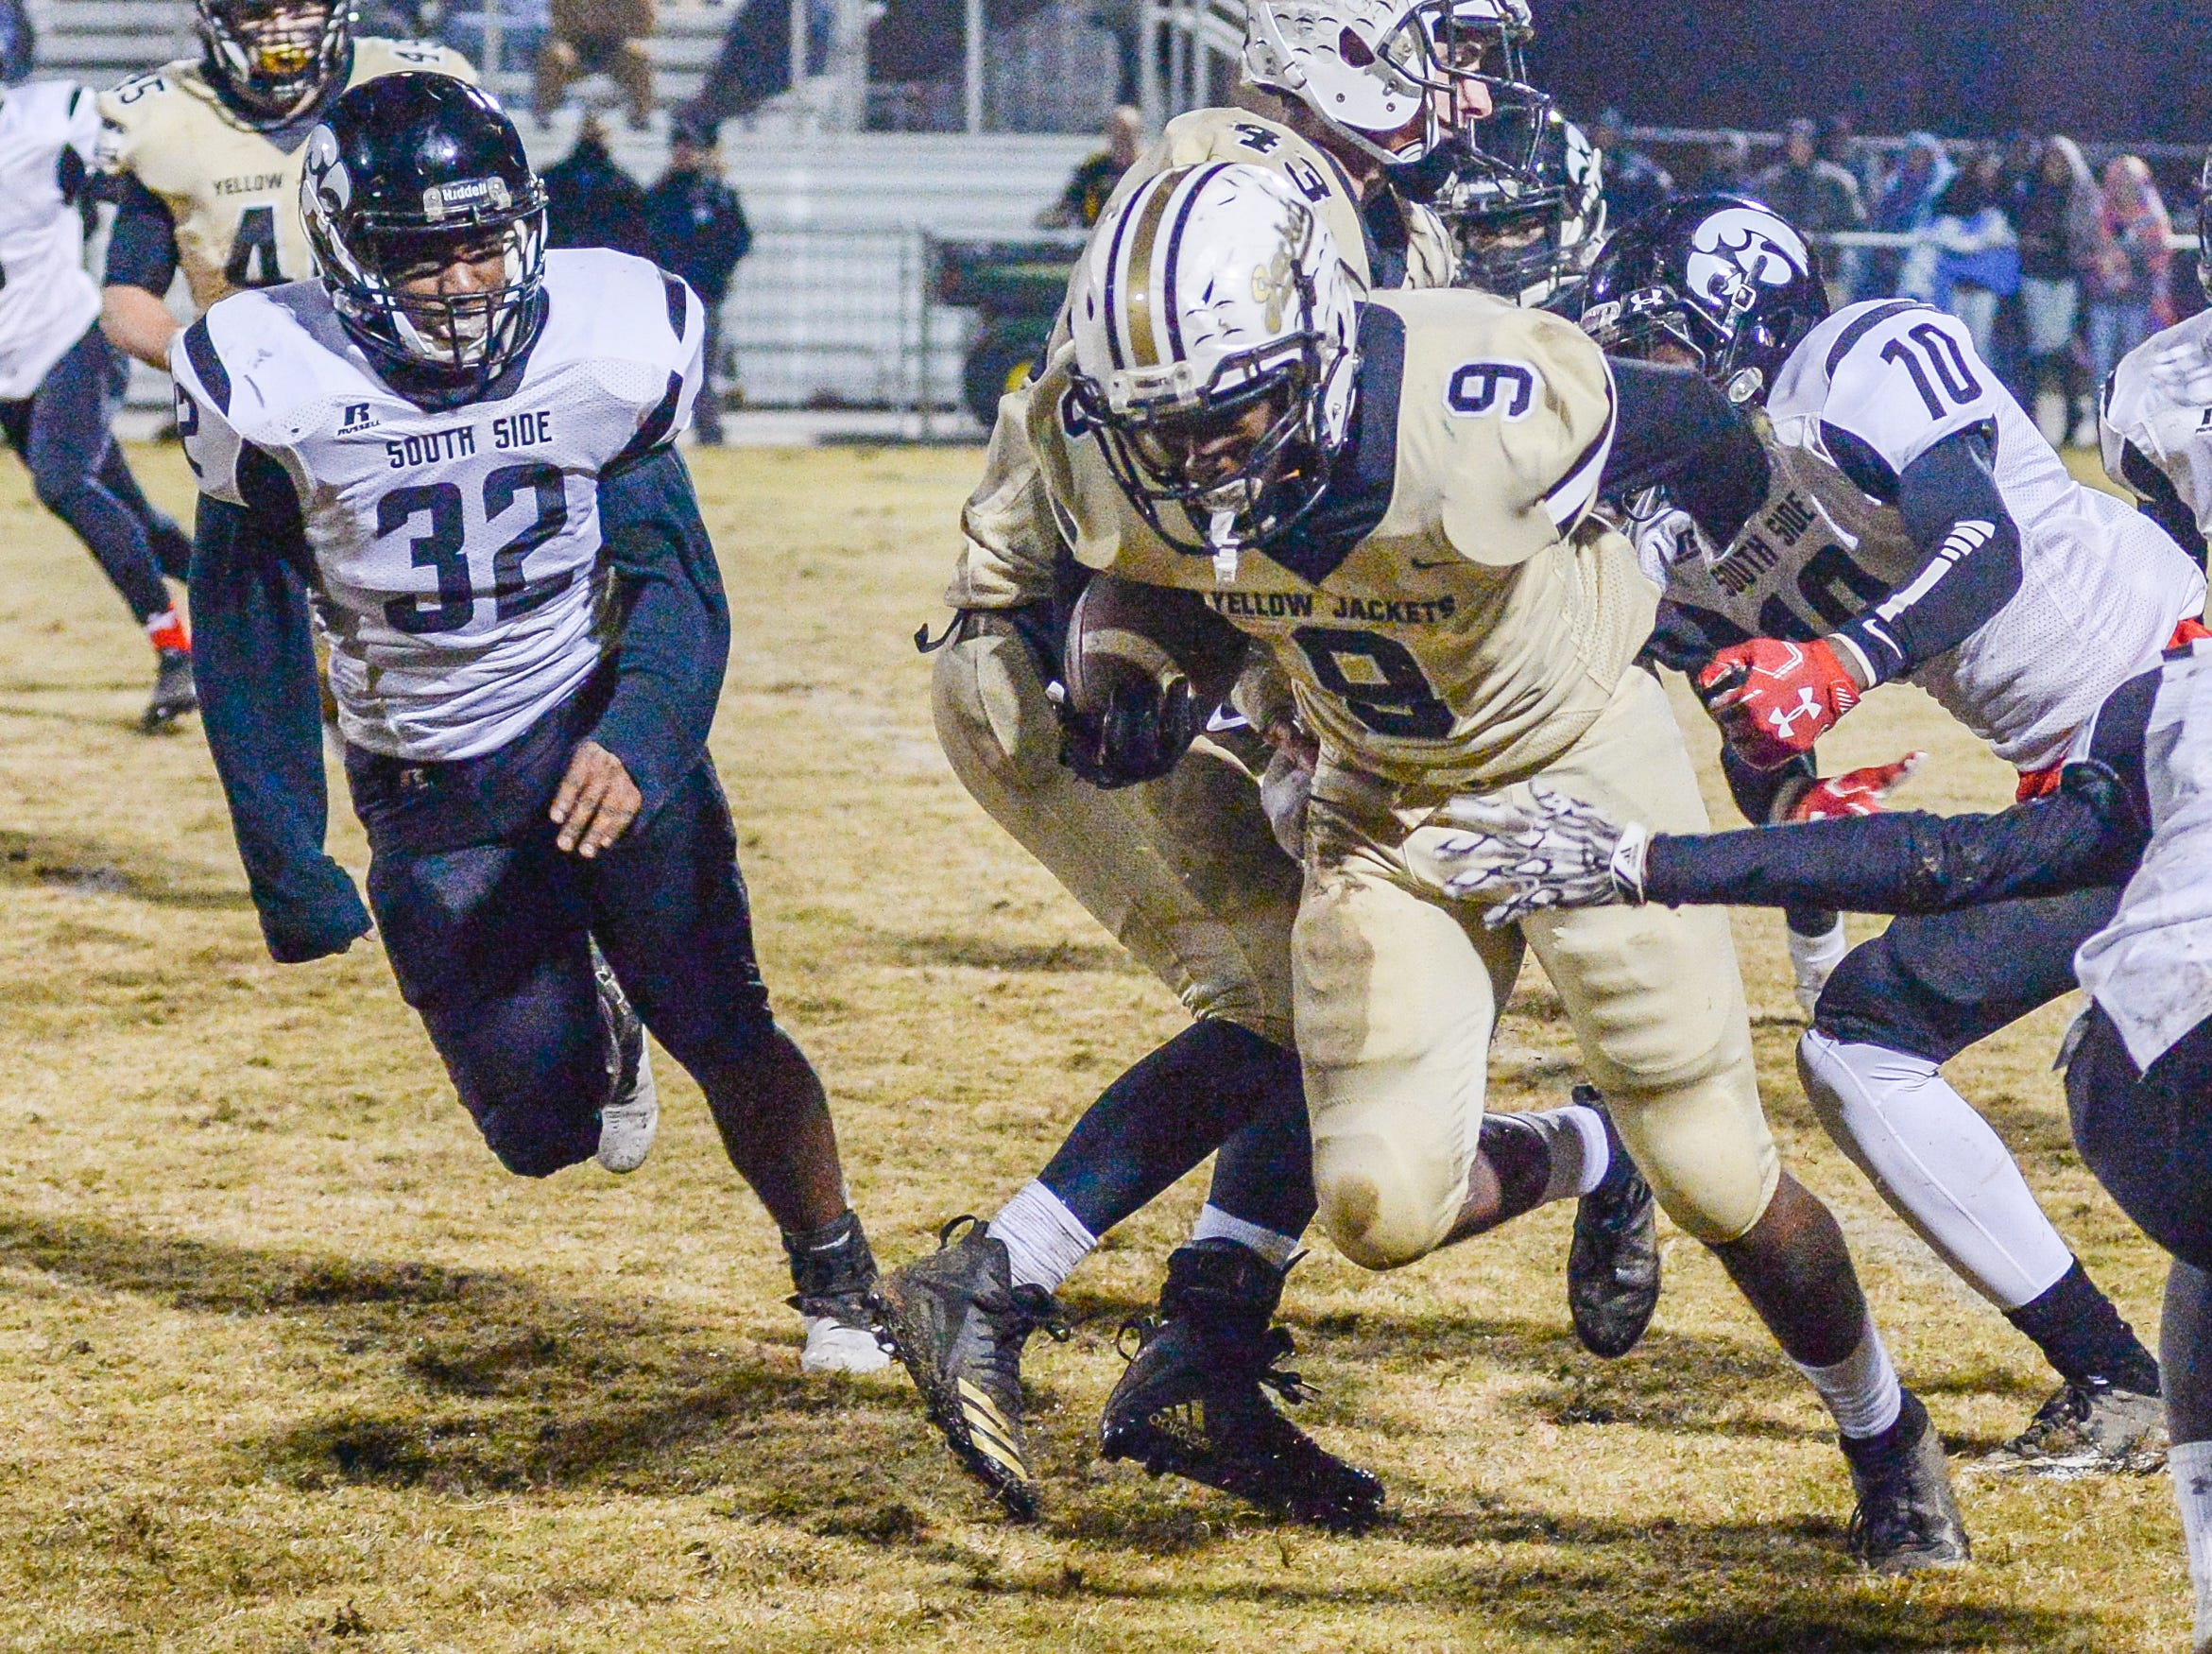 Springfield High School player Kevontay White tries to move forward during a game against South Side School at Springfield High School on Friday, Nov. 9.